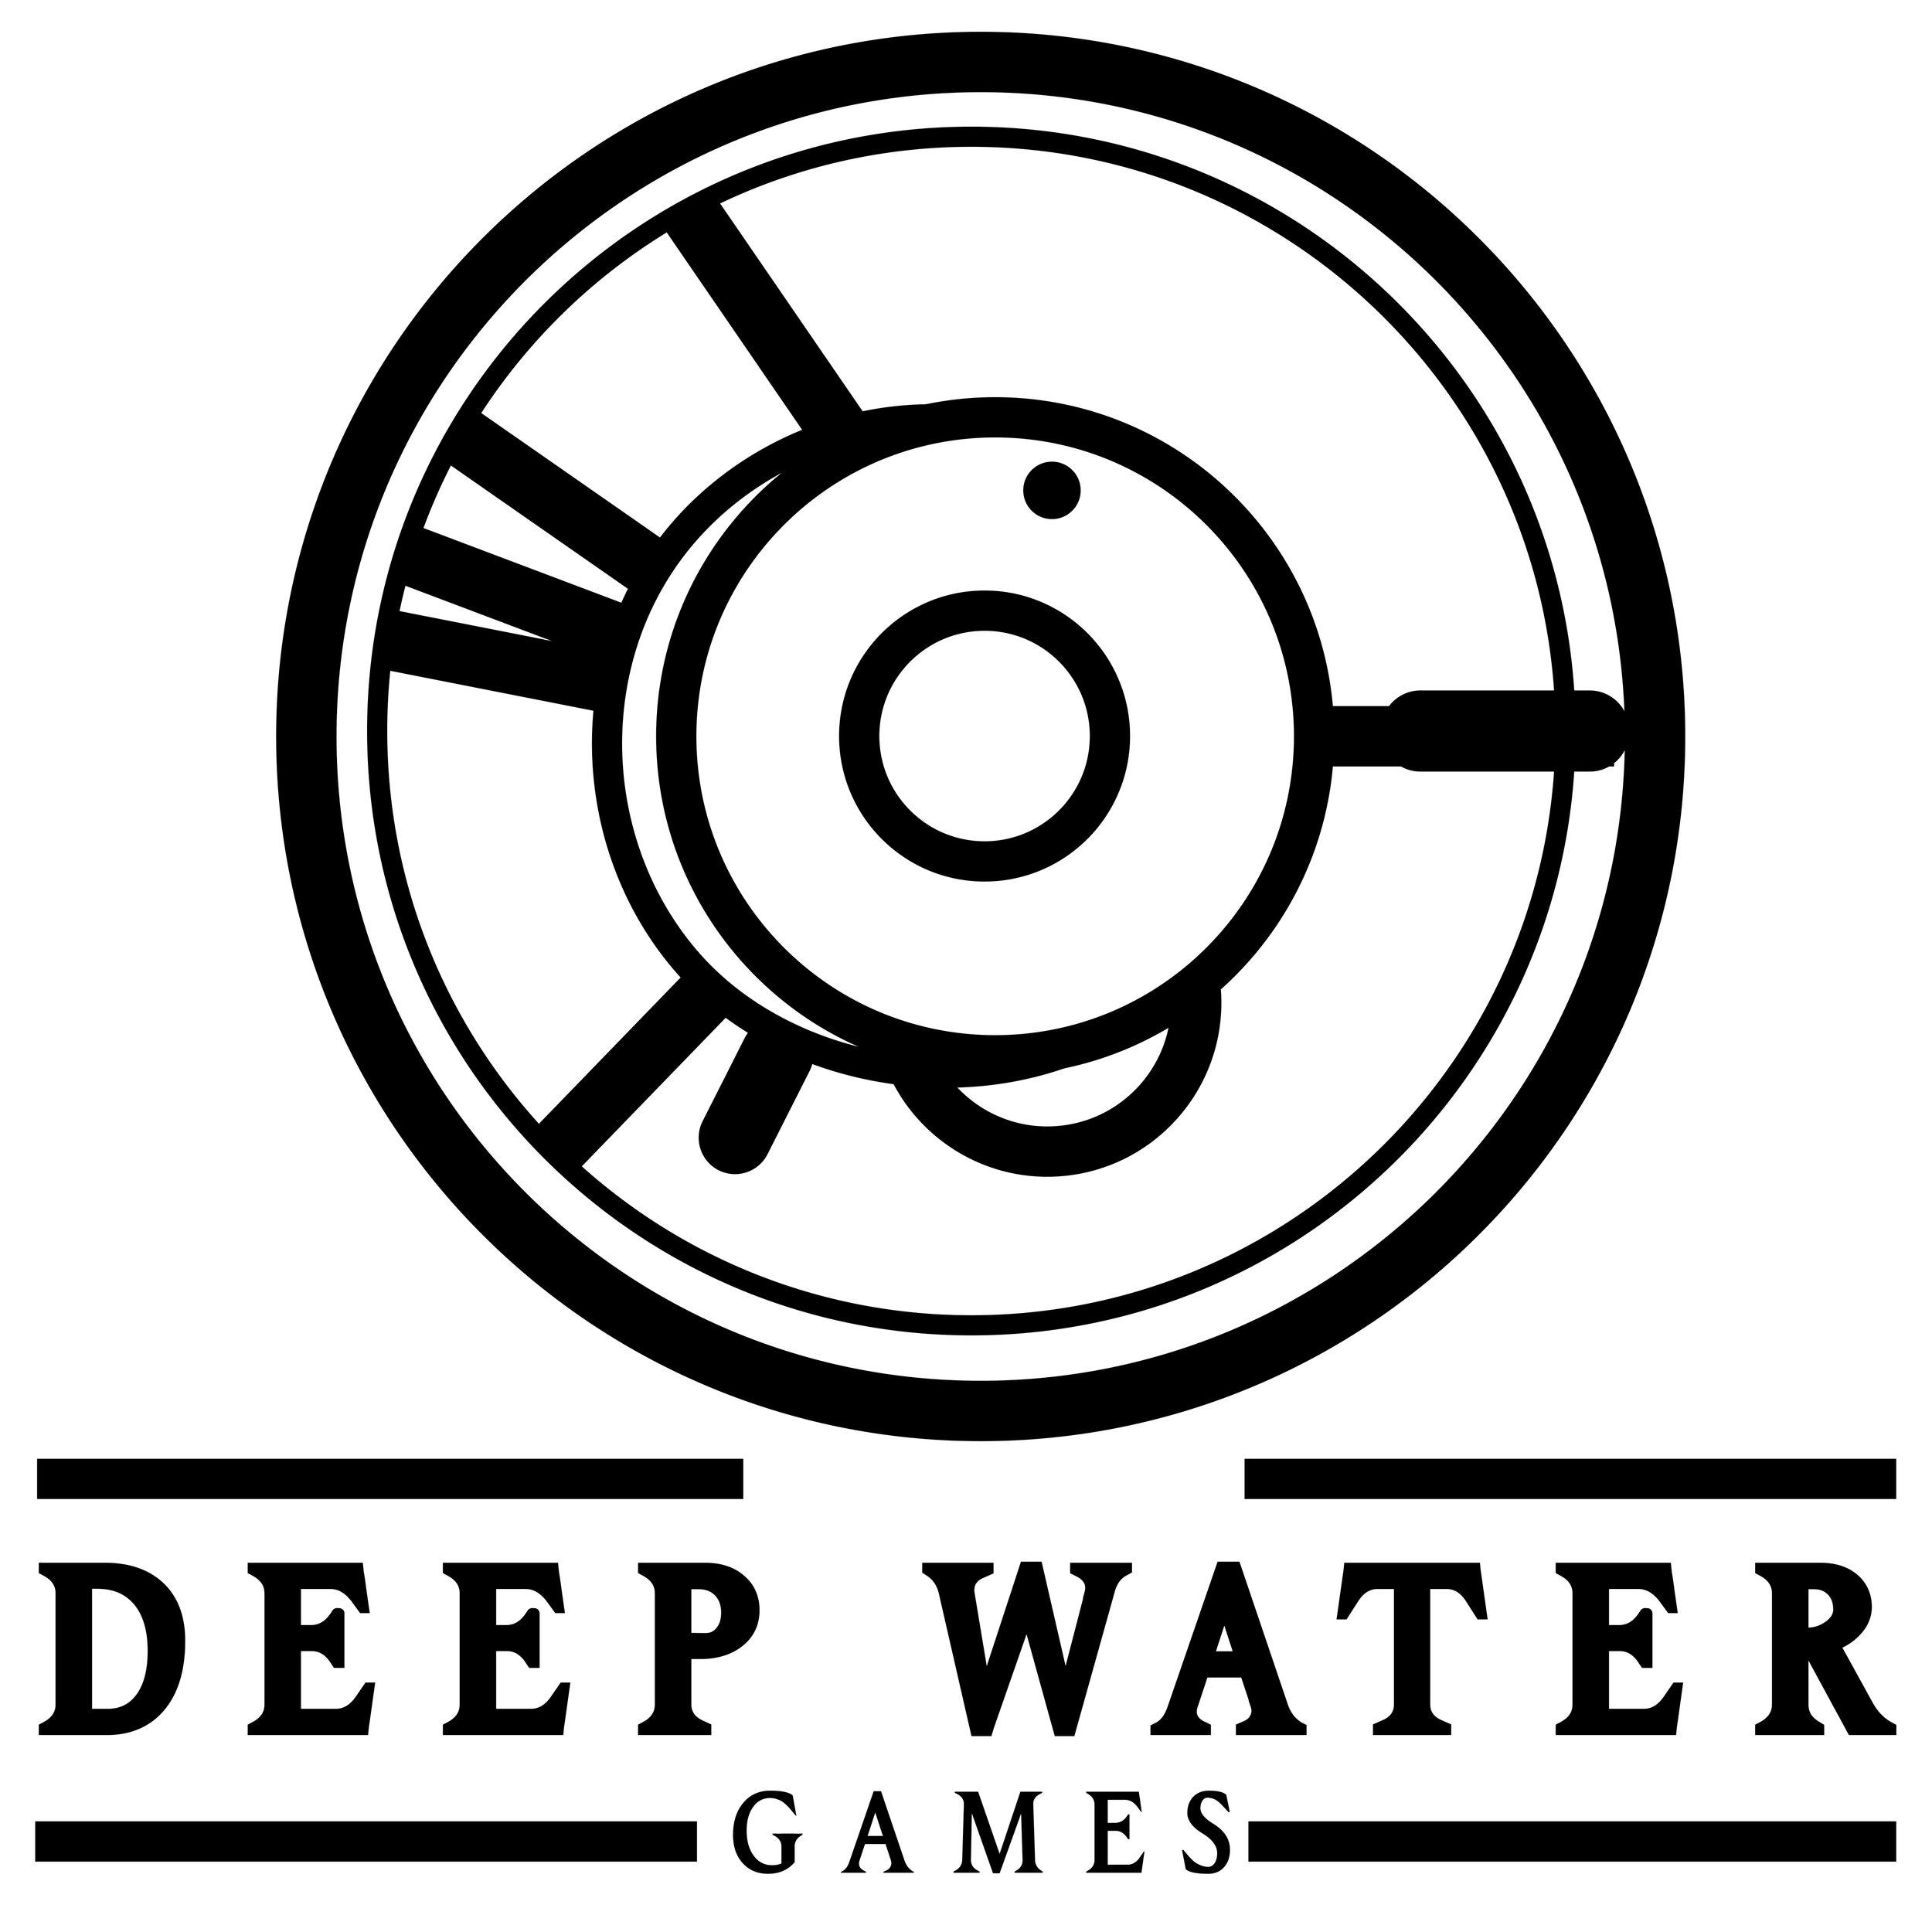 Join the Deep Water Crew! - Join the crew as they open up Gen Con with a giant game of Welcome To…and maybe sneak in a new game ;)